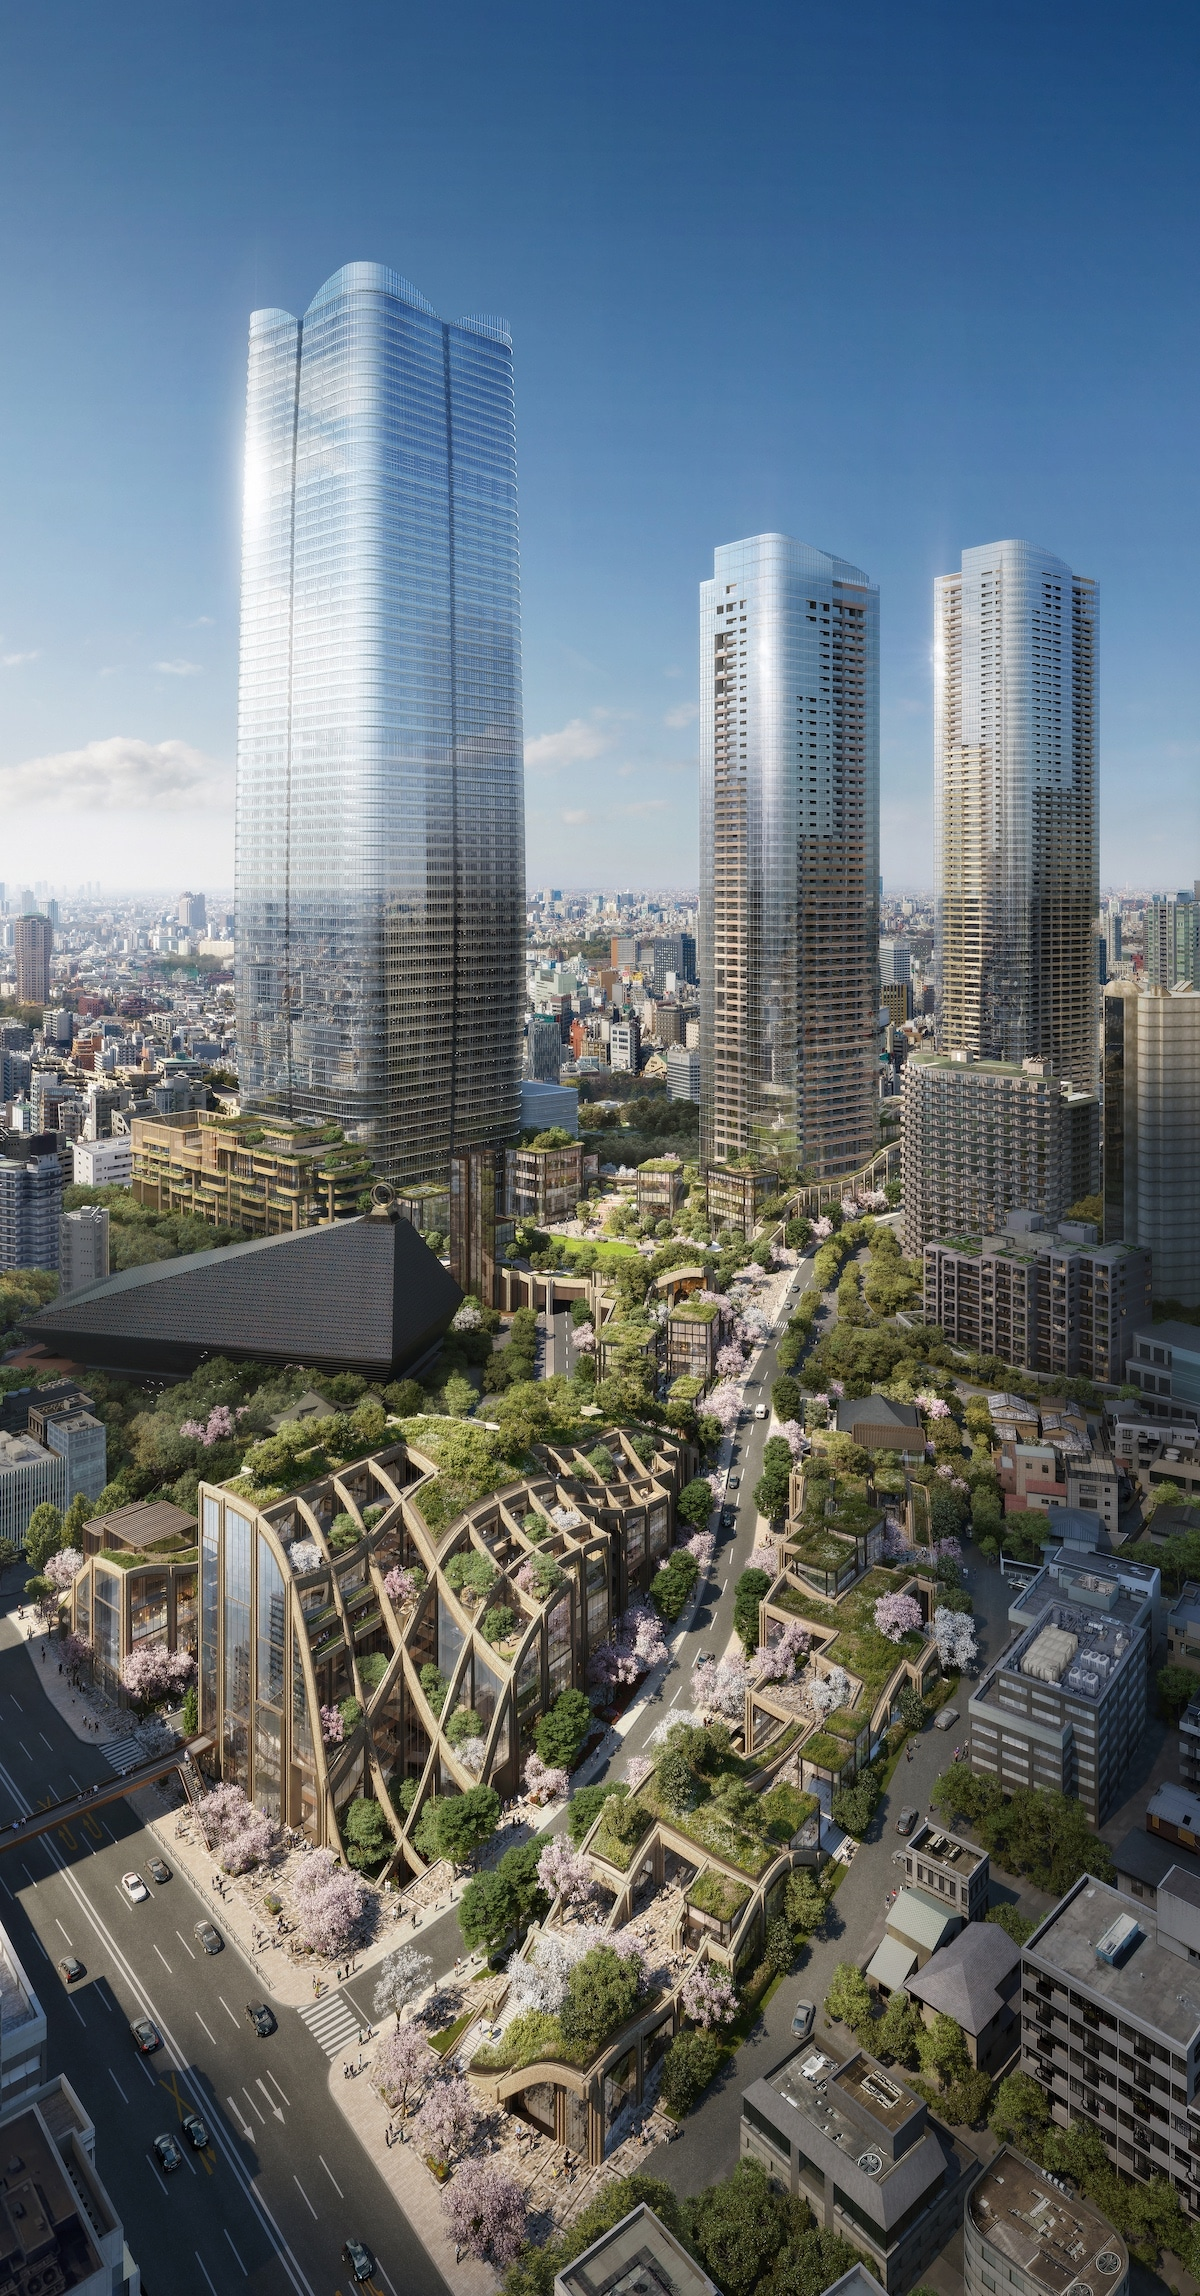 Heatherwick Studio Architecture in Toranomon-Azabudai District Tokyo